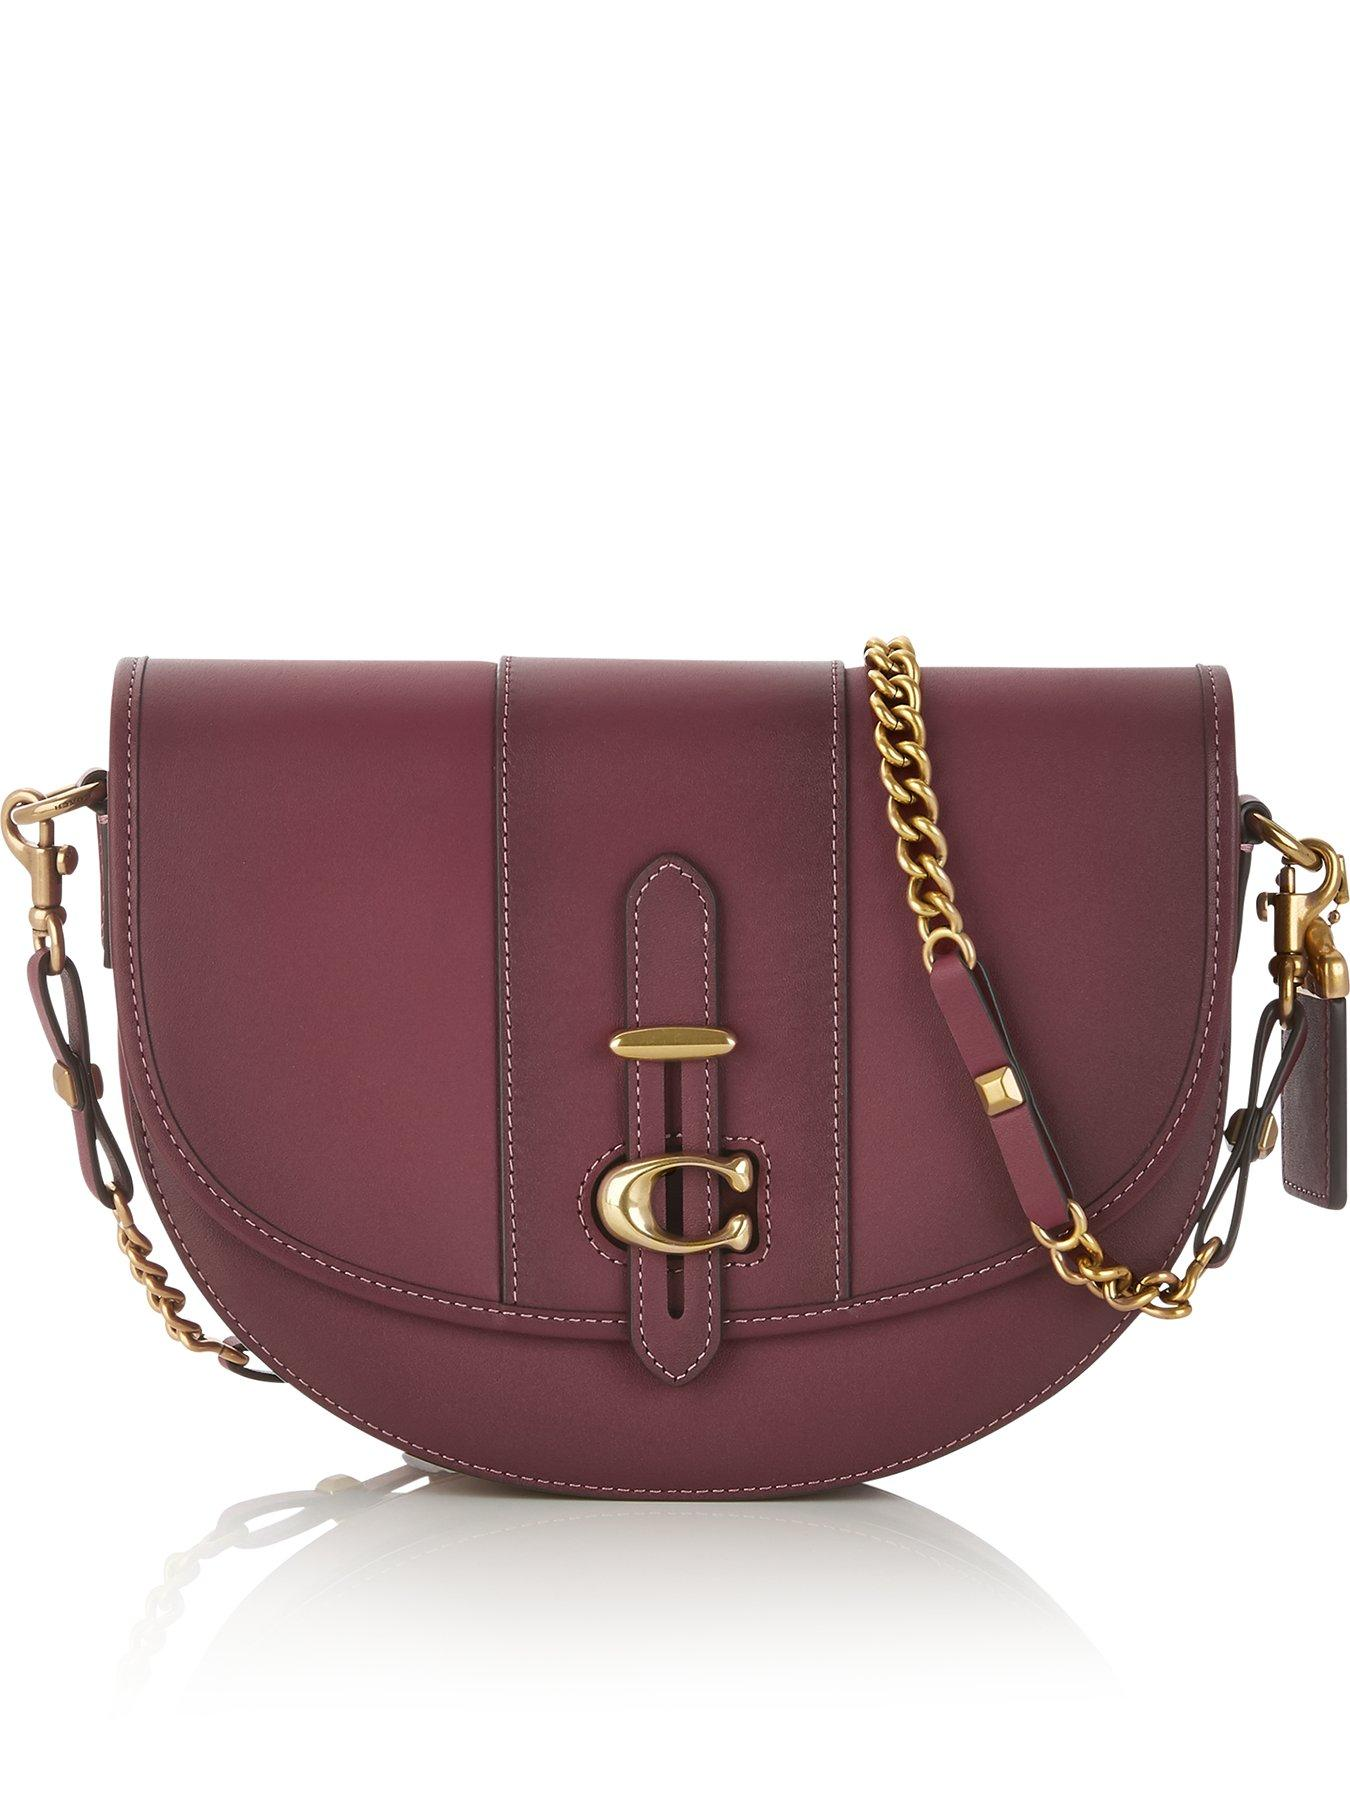 419861252862b sweden coach fashion signature medium red shoulder bags erd c454b 544aa;  italy coach medium glove tanned leather saddle bag burgundy 07baa b7e97